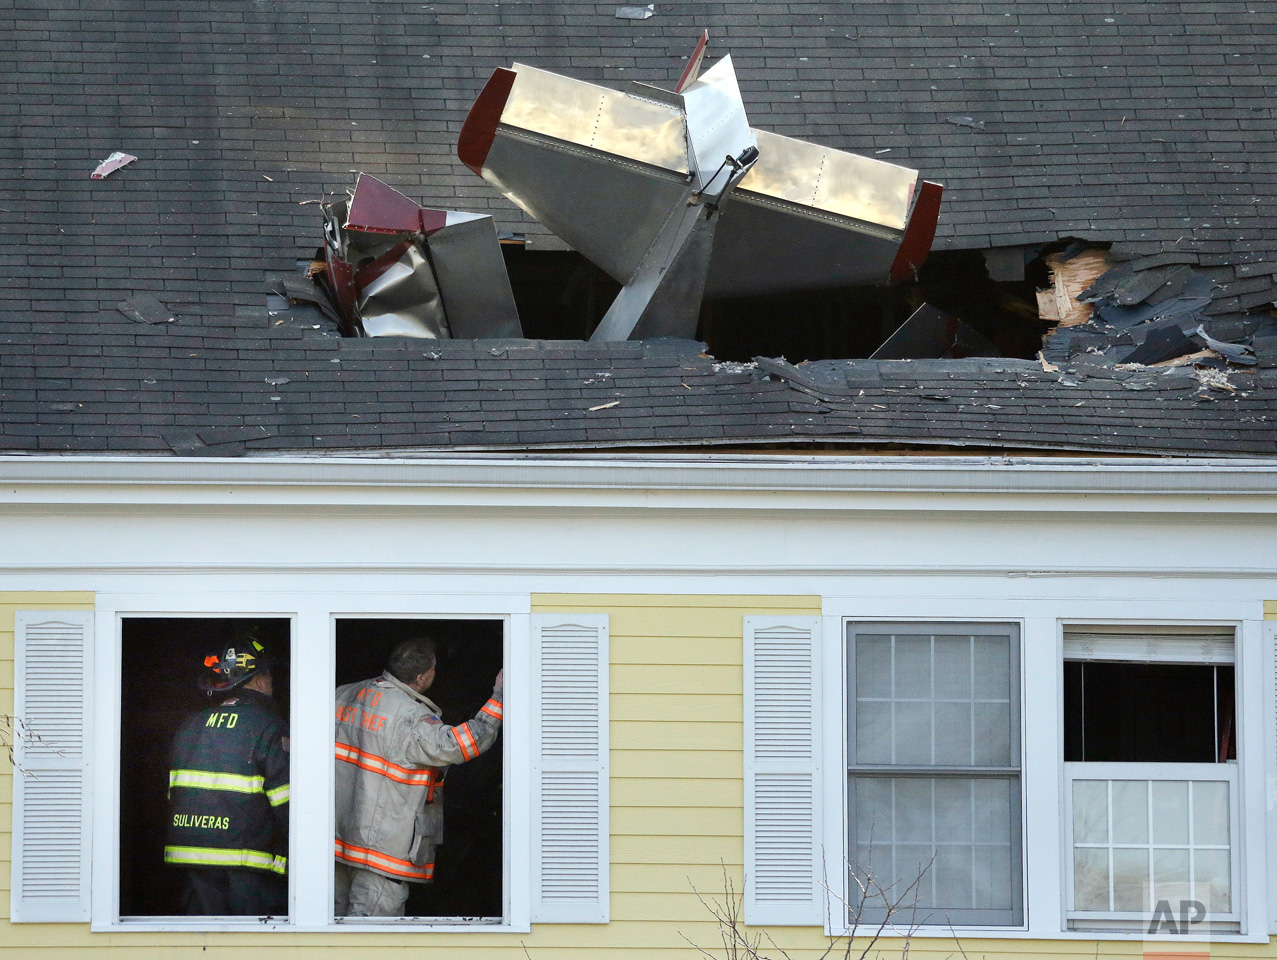 Firefighters investigate the site of a single-engine aircraft collision into a building across the Merrimack River from Lawrence Municipal Airport in Methuen, Mass., on Tuesday, Feb. 28, 2017. According to police, the pilot of the home-built plane was killed, while no one in the building was hurt. (AP Photo/Elise Amendola)